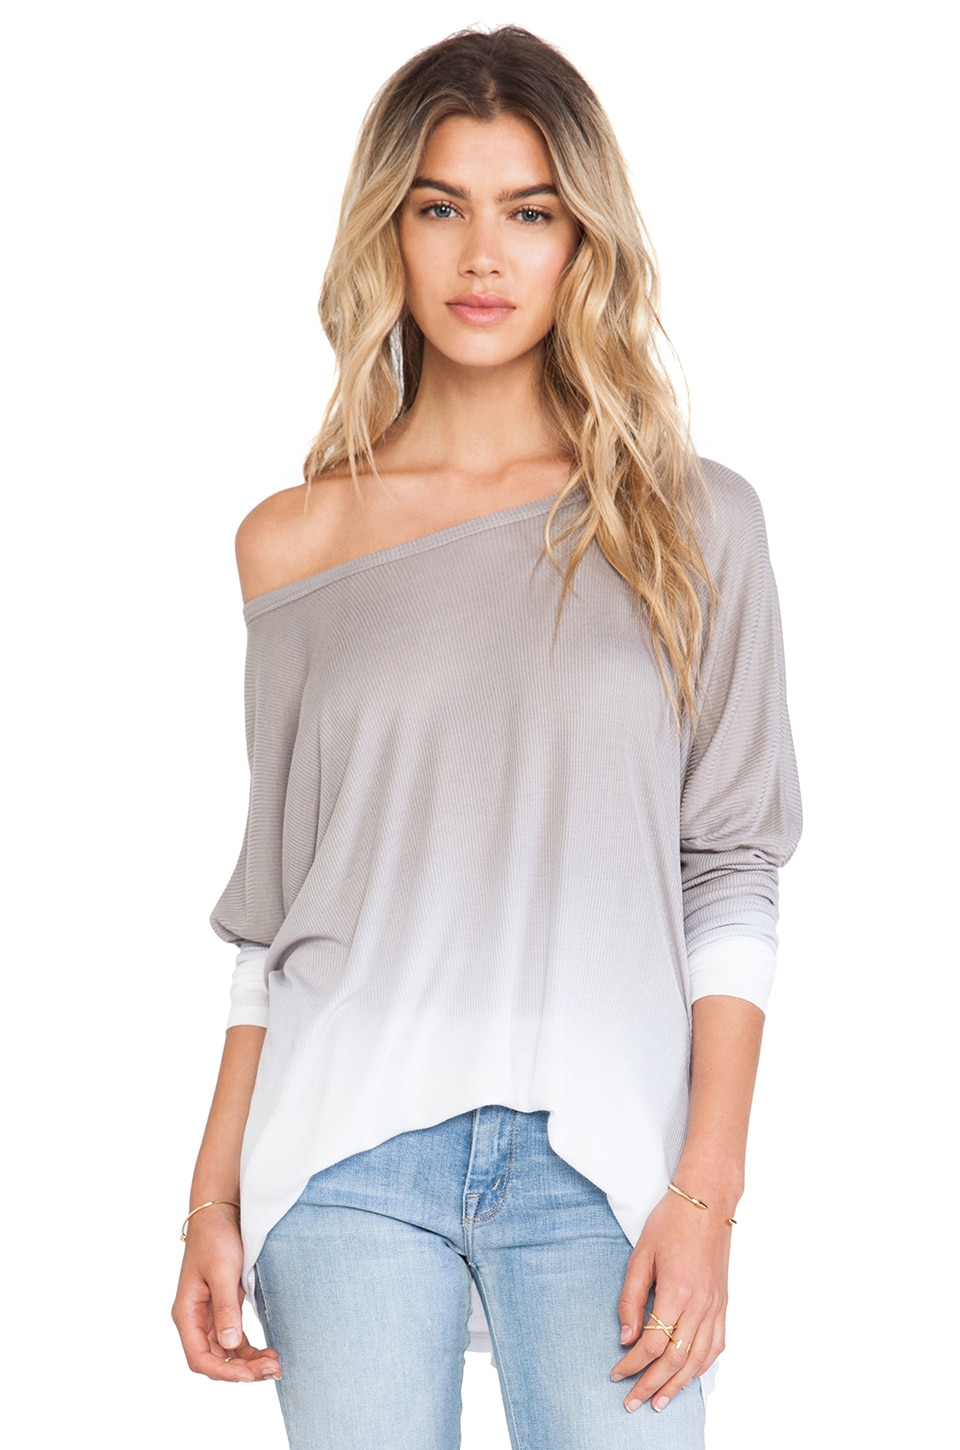 Saint Grace Saint Omega Oversized Top in Pewter Ombre